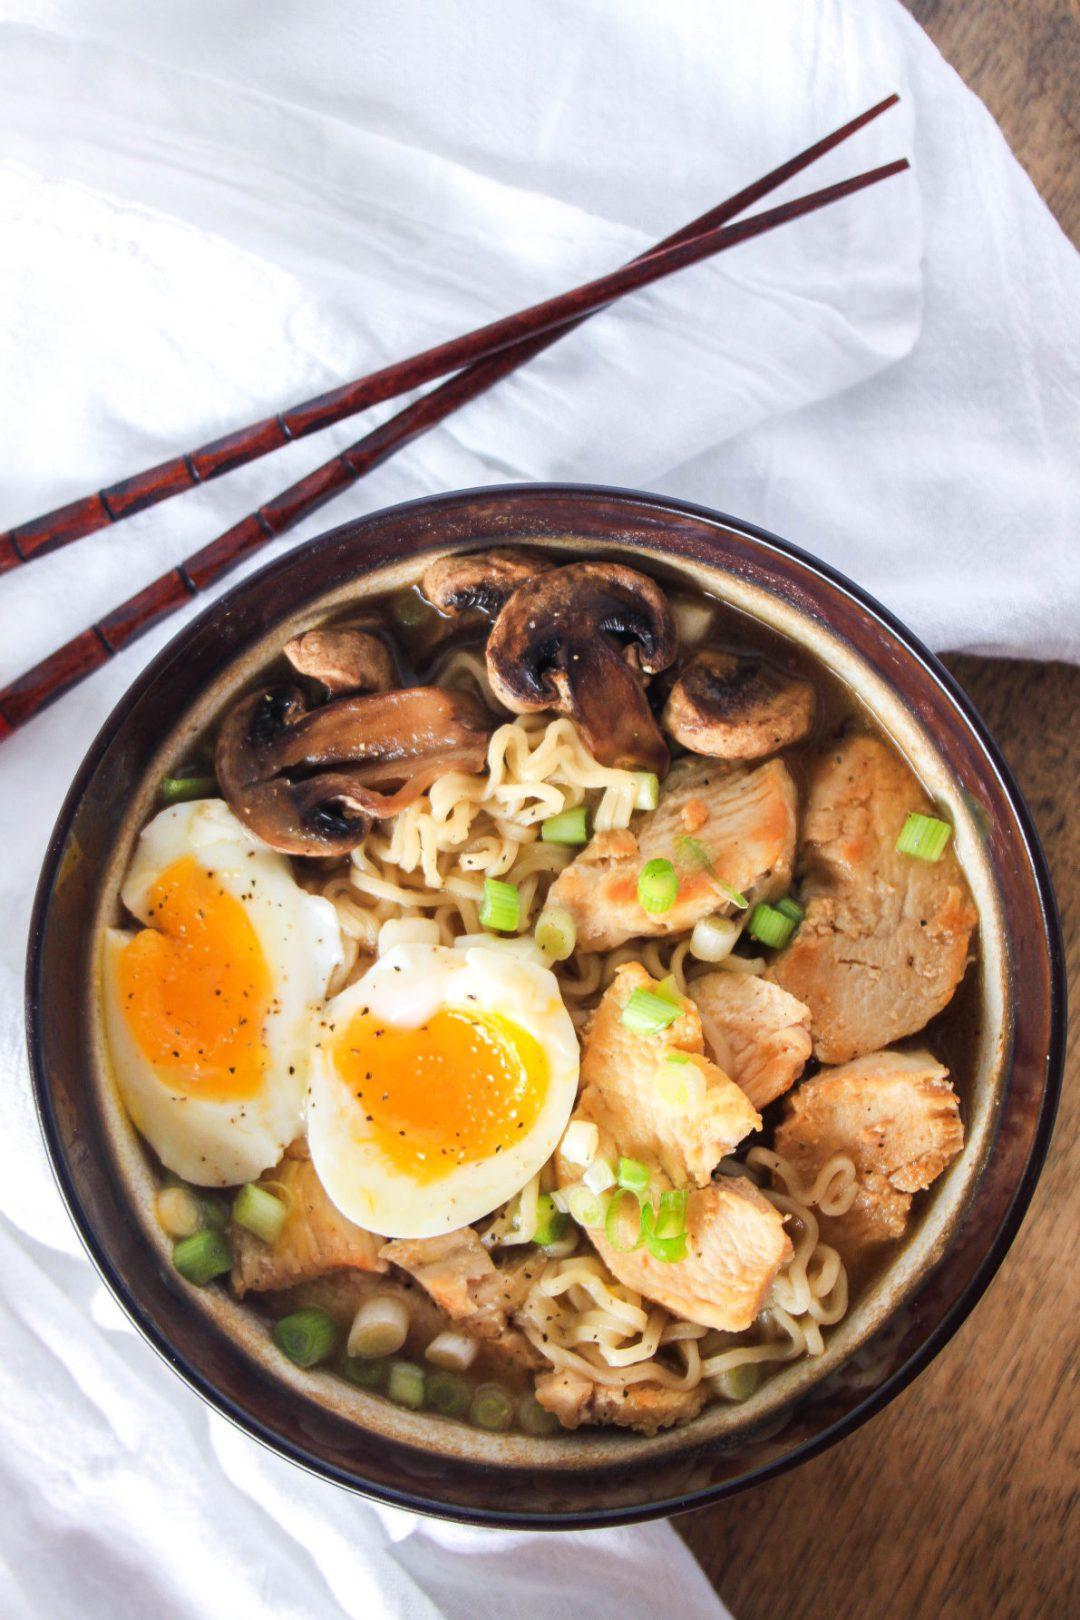 30 Days of Healthy Chicken Dinner Recipes - Japanese Ramen with Chicken via Wanderzest | http://www.roseclearfield.com